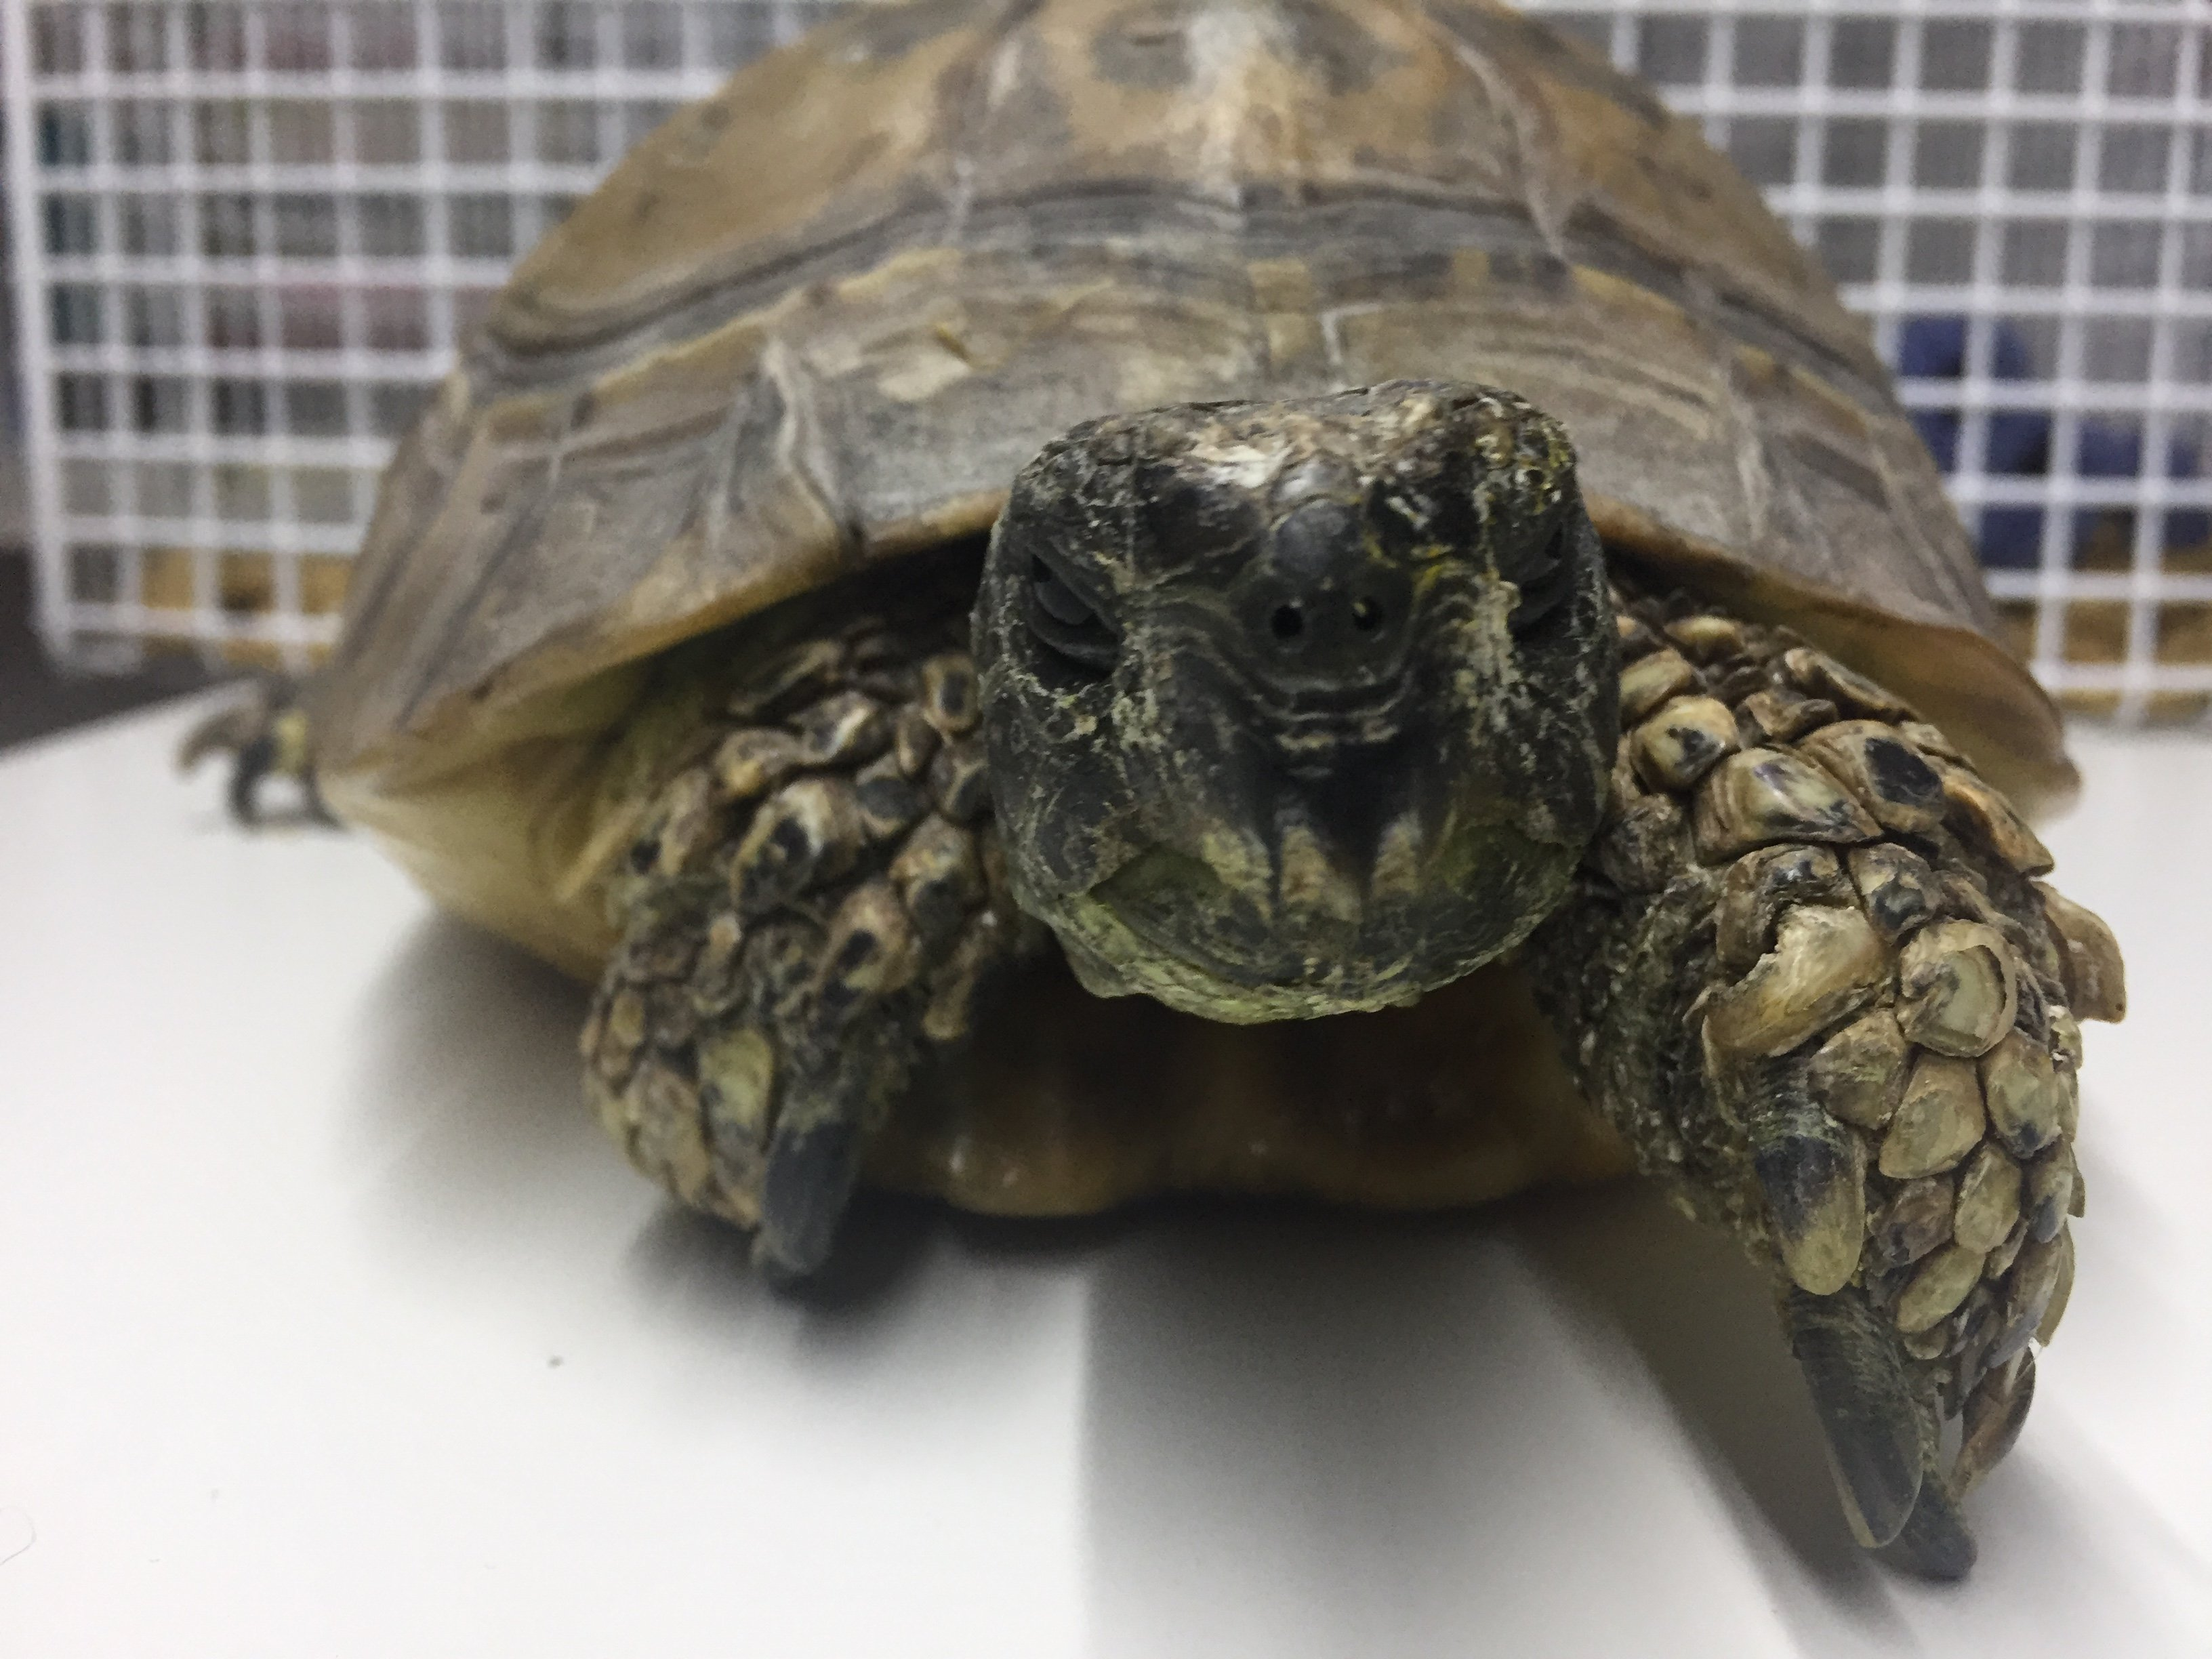 Introducing Bright Side's latest VIPet (along with hibernation tips for Tortoises)